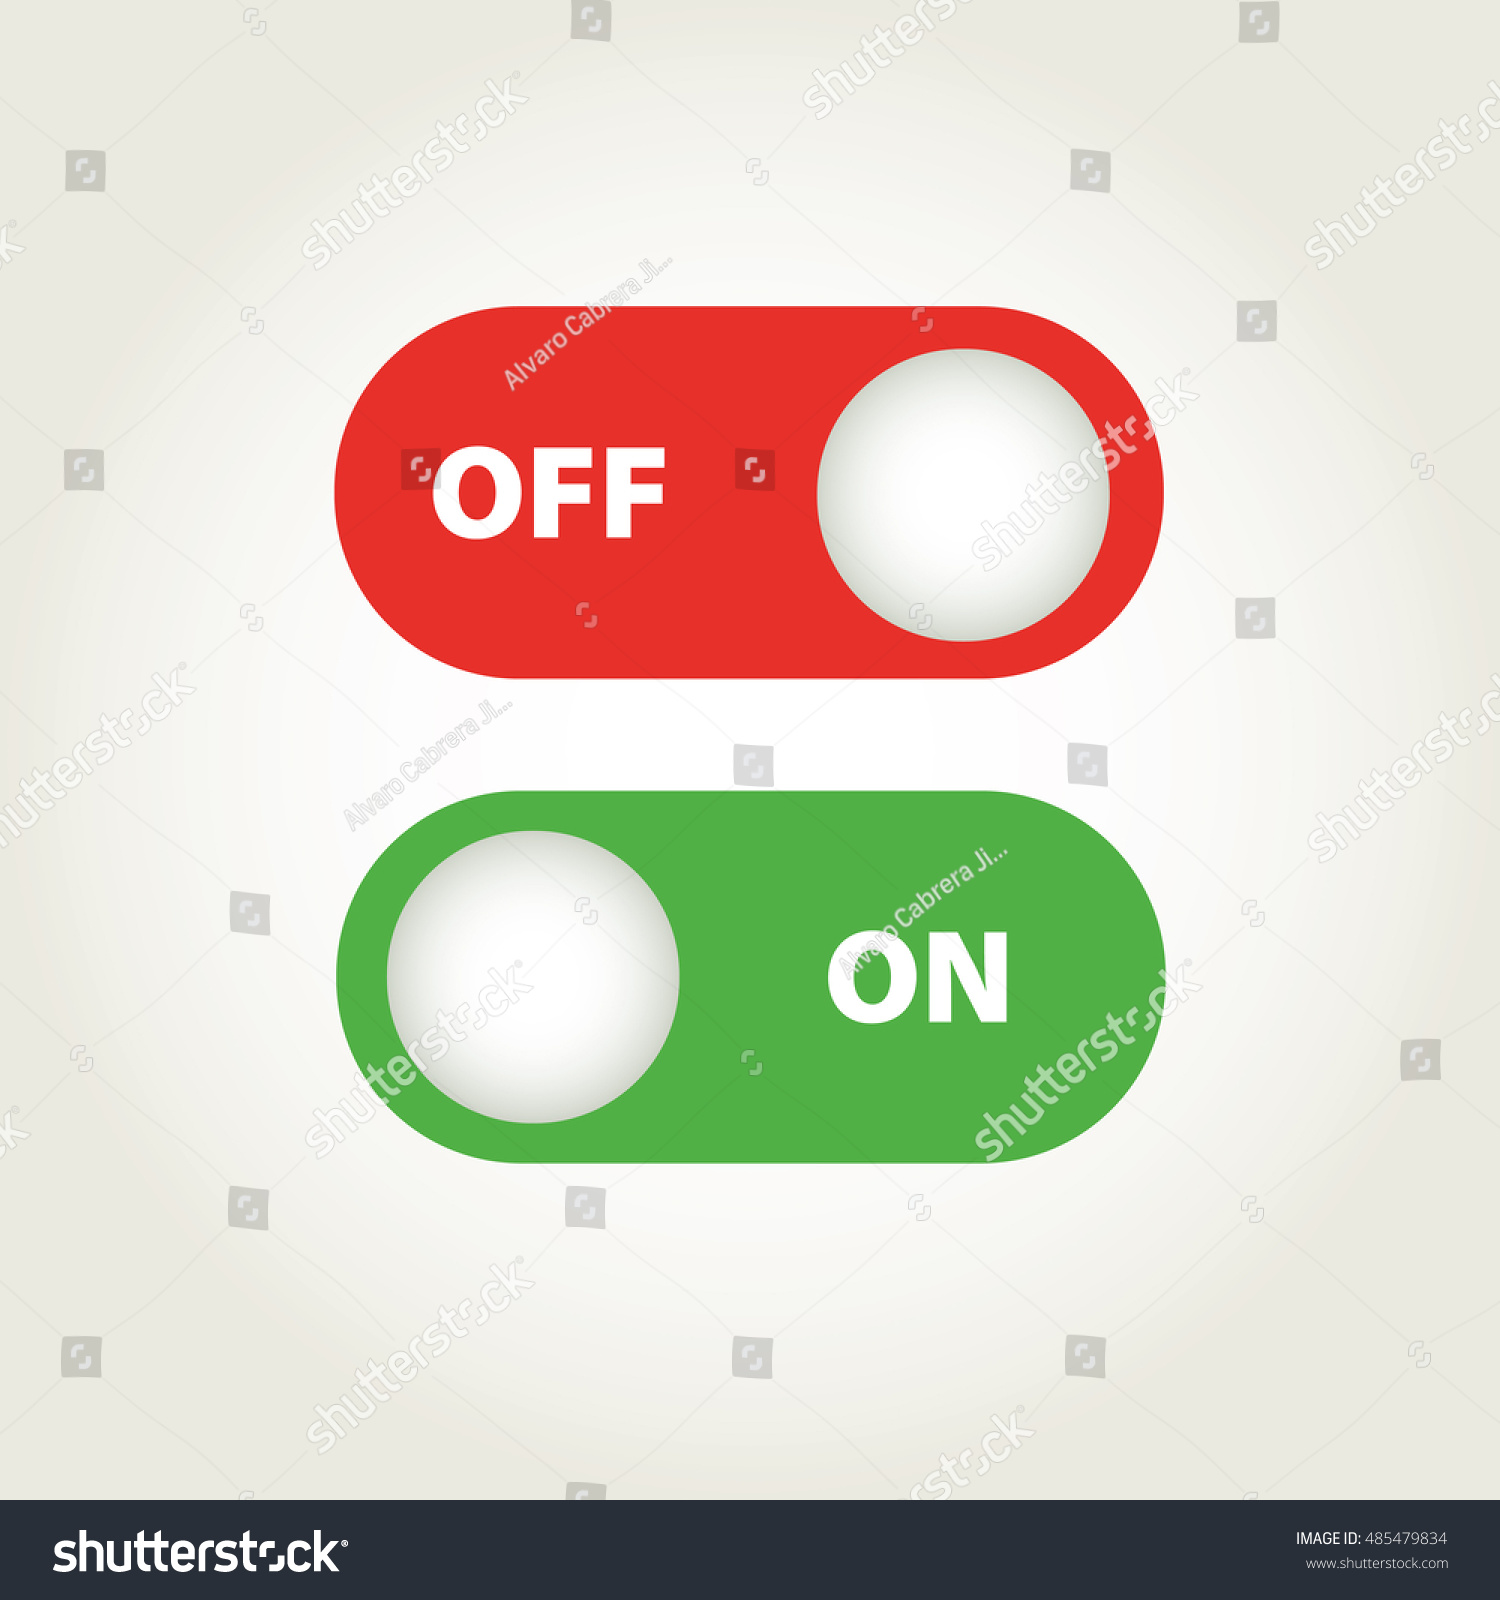 Toggle switch icon on off position stock vector 485479834 toggle switch icon on off position biocorpaavc Images